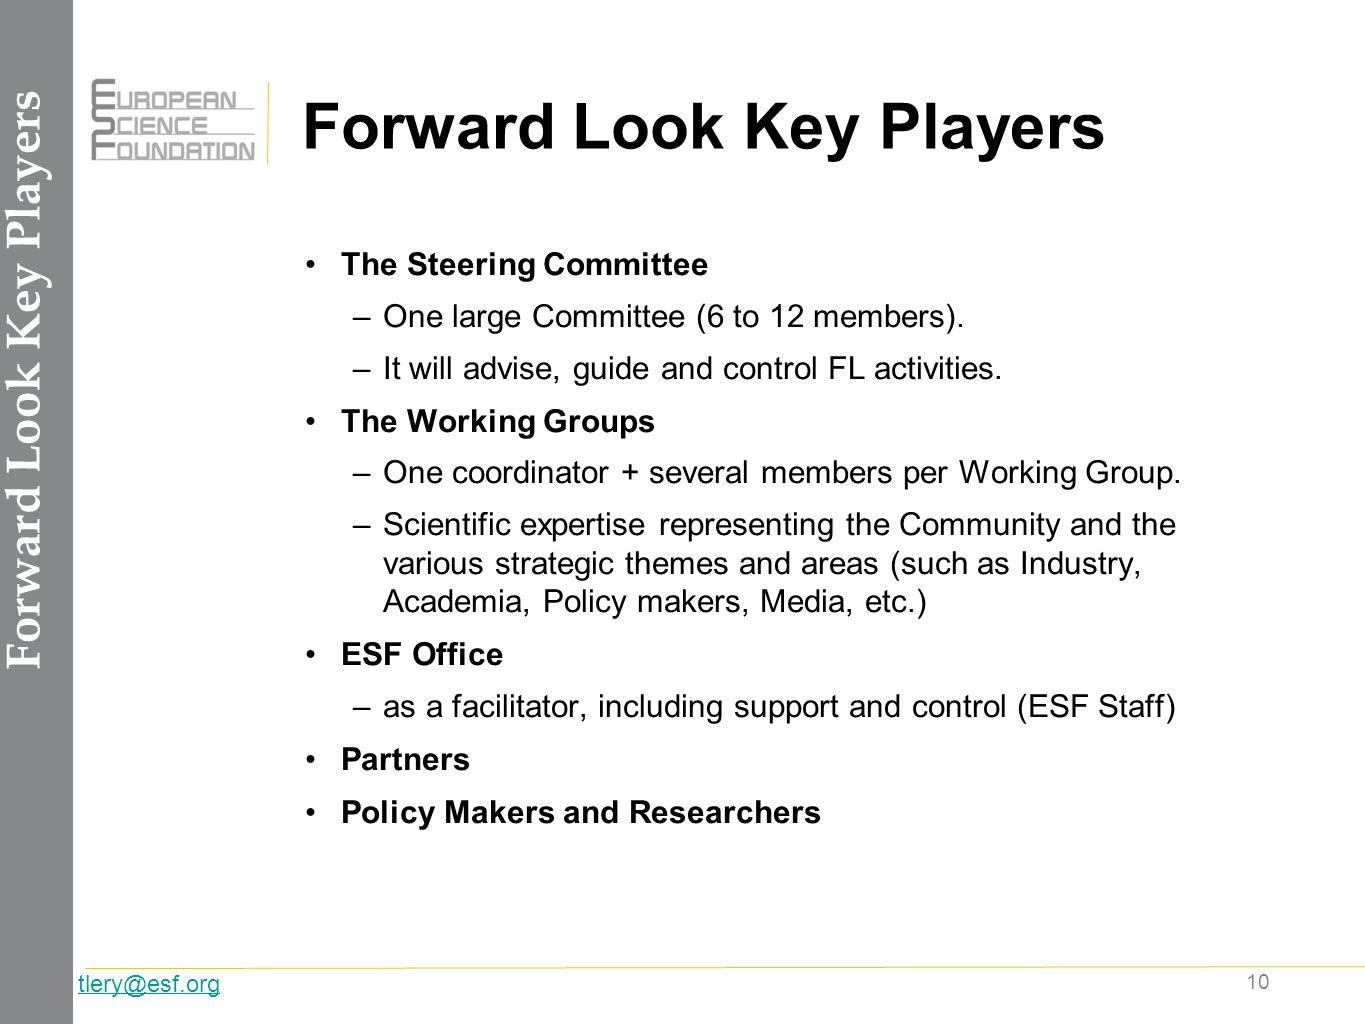 10 tlery@esf.org Forward Look Key Players The Steering Committee –One large Committee (6 to 12 members).